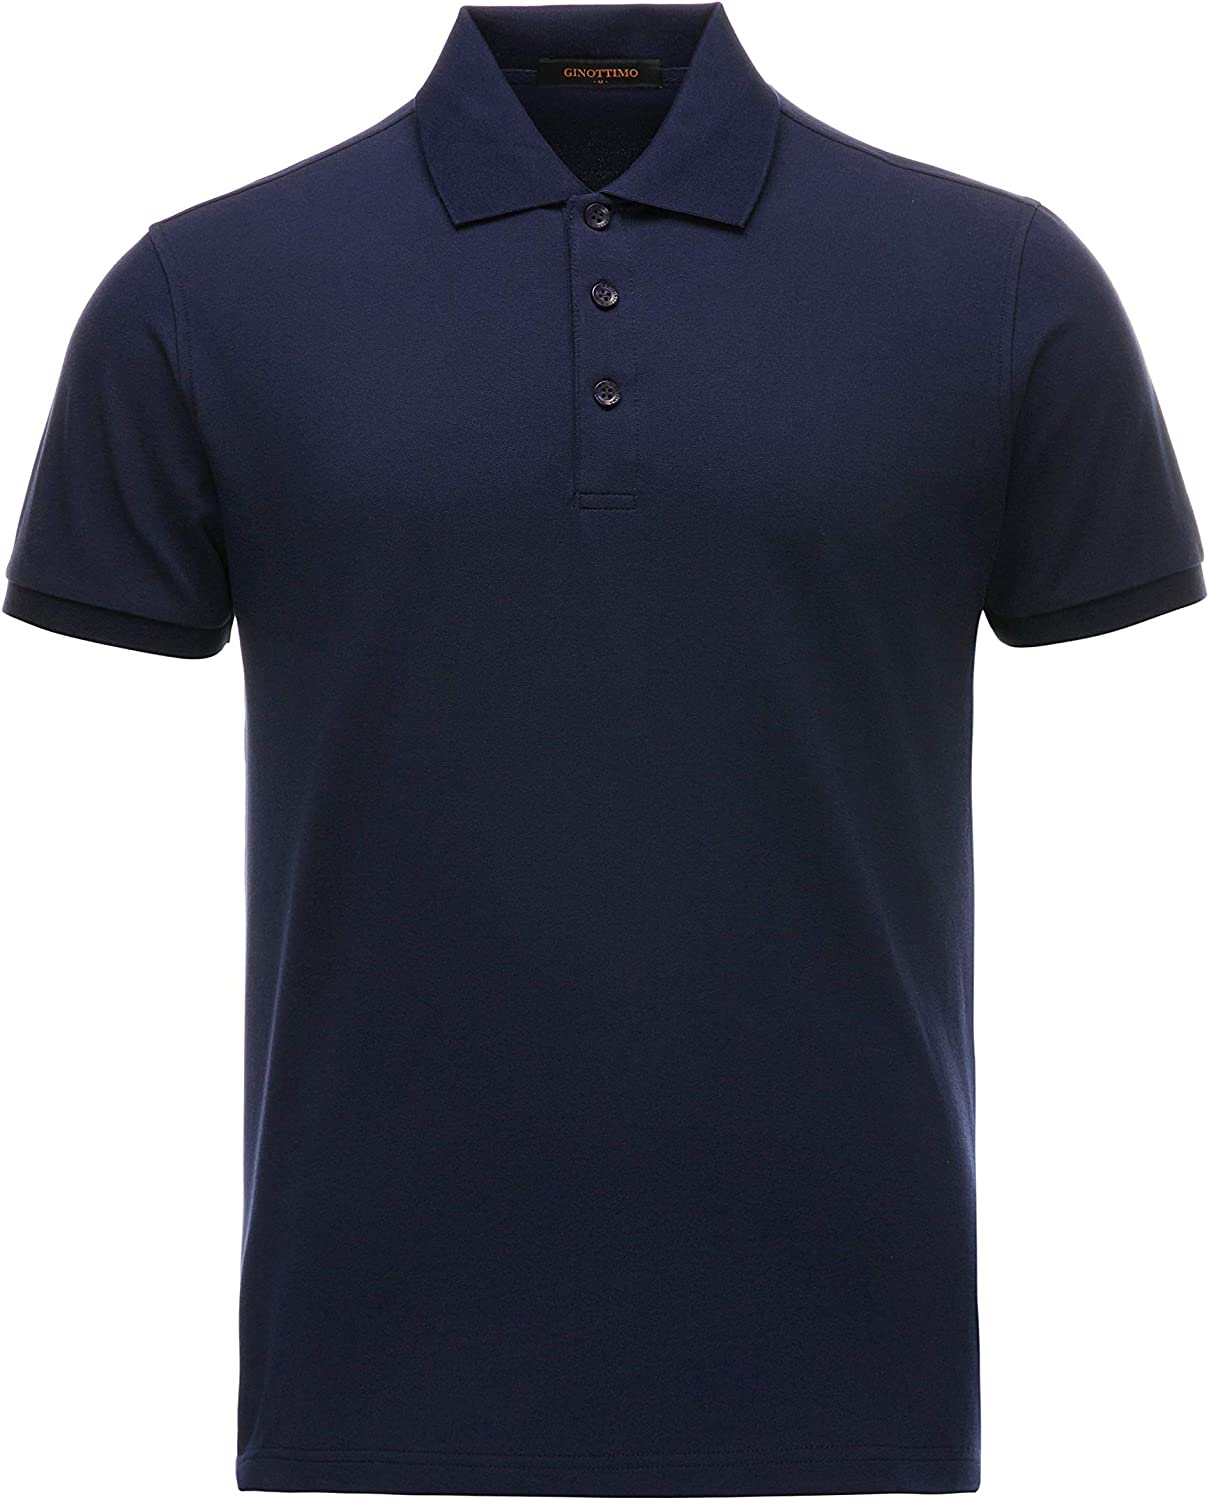 Men's Slim-Fit Cotton Polo Shirts Popular Sweat Wicking Max 86% OFF Breathable Short